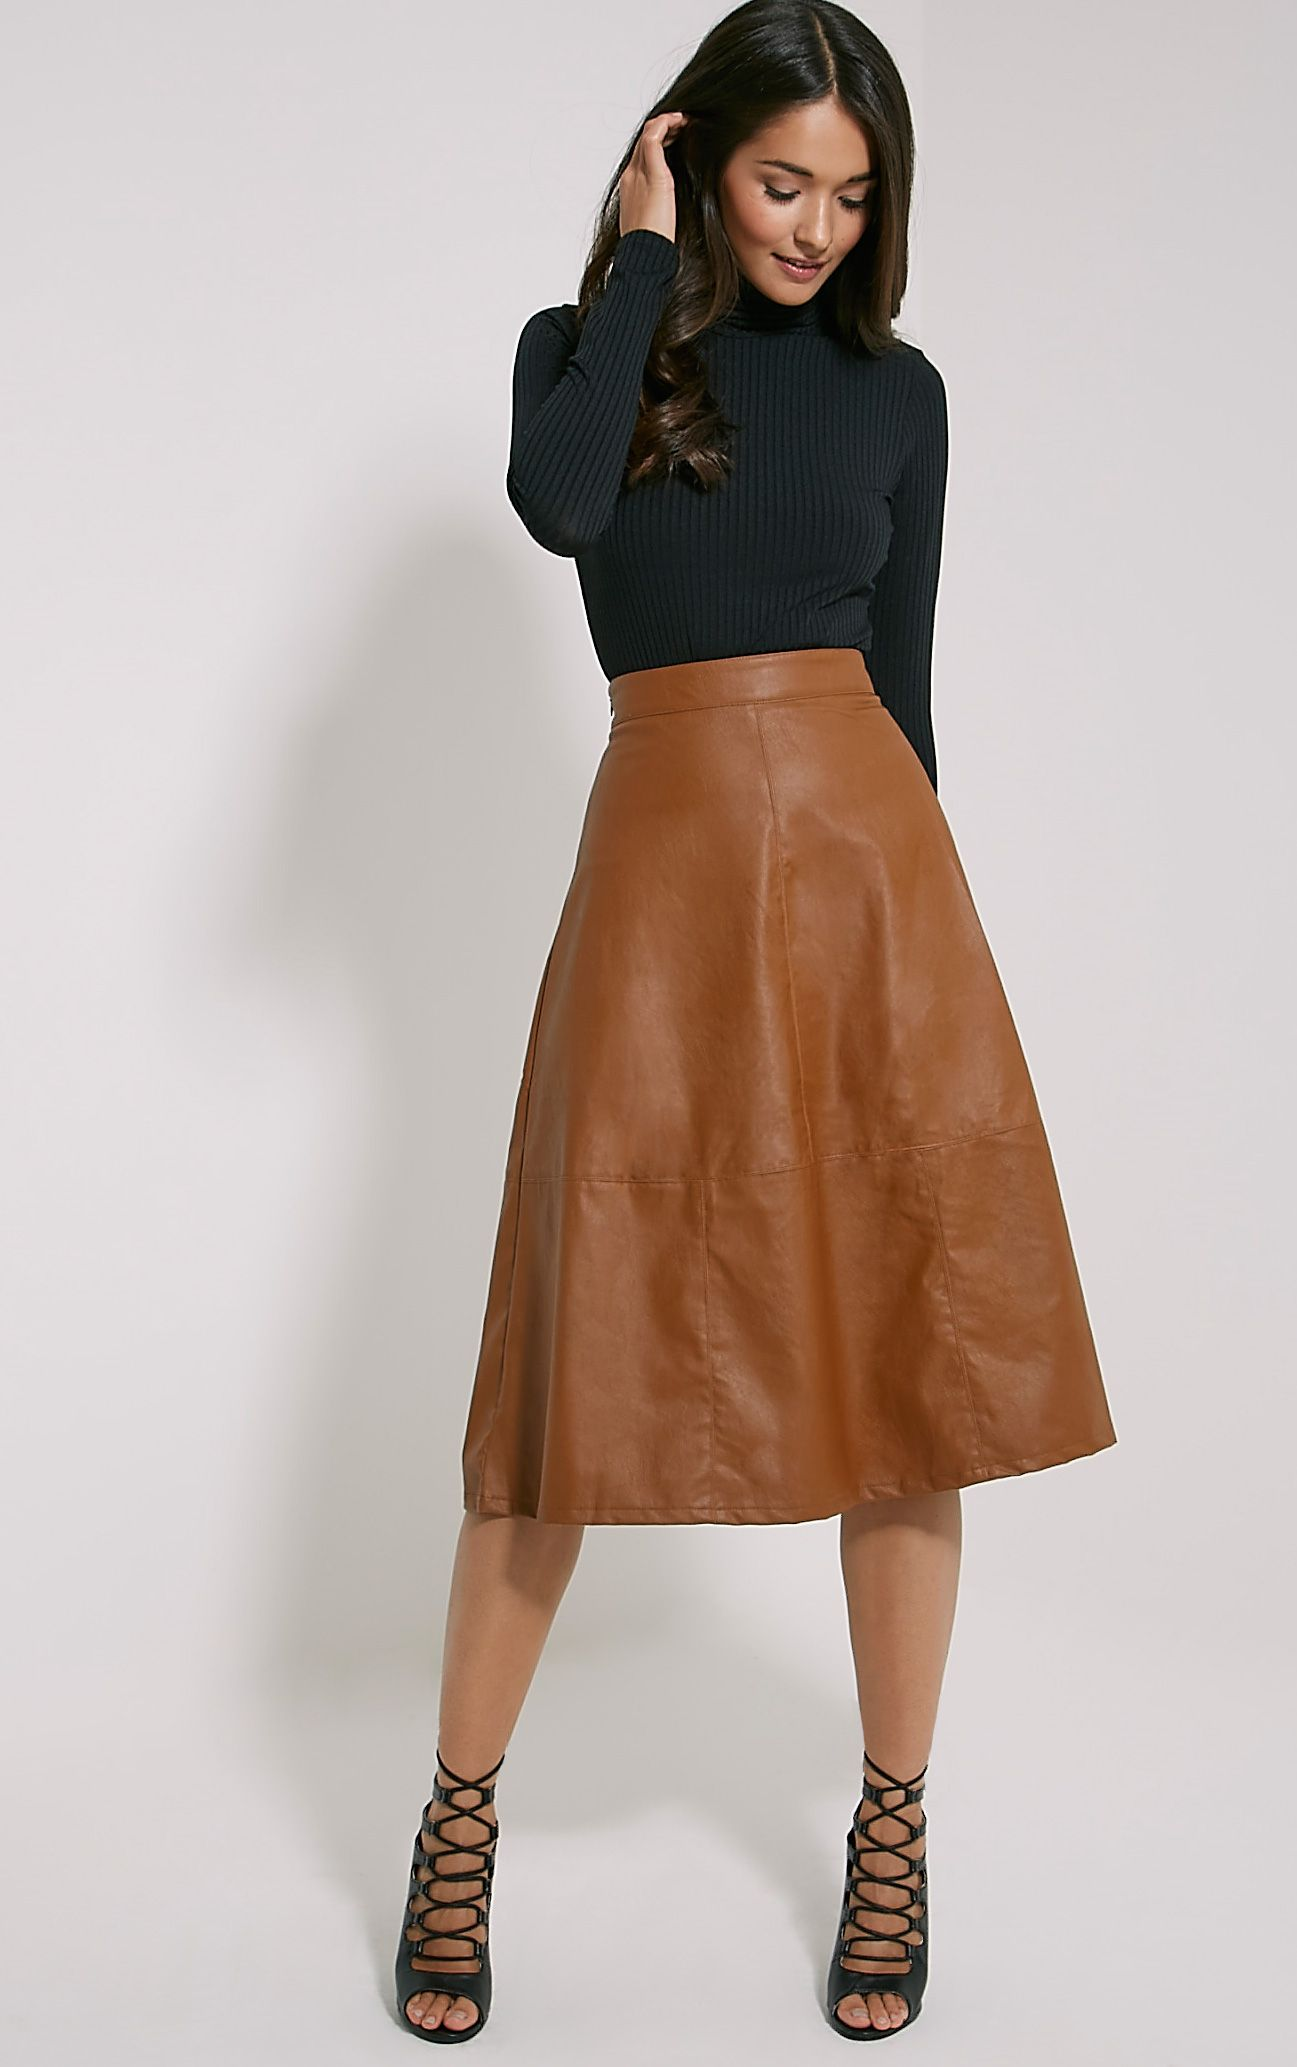 Alison Tan Faux Leather A-Line Midi Skirt 1